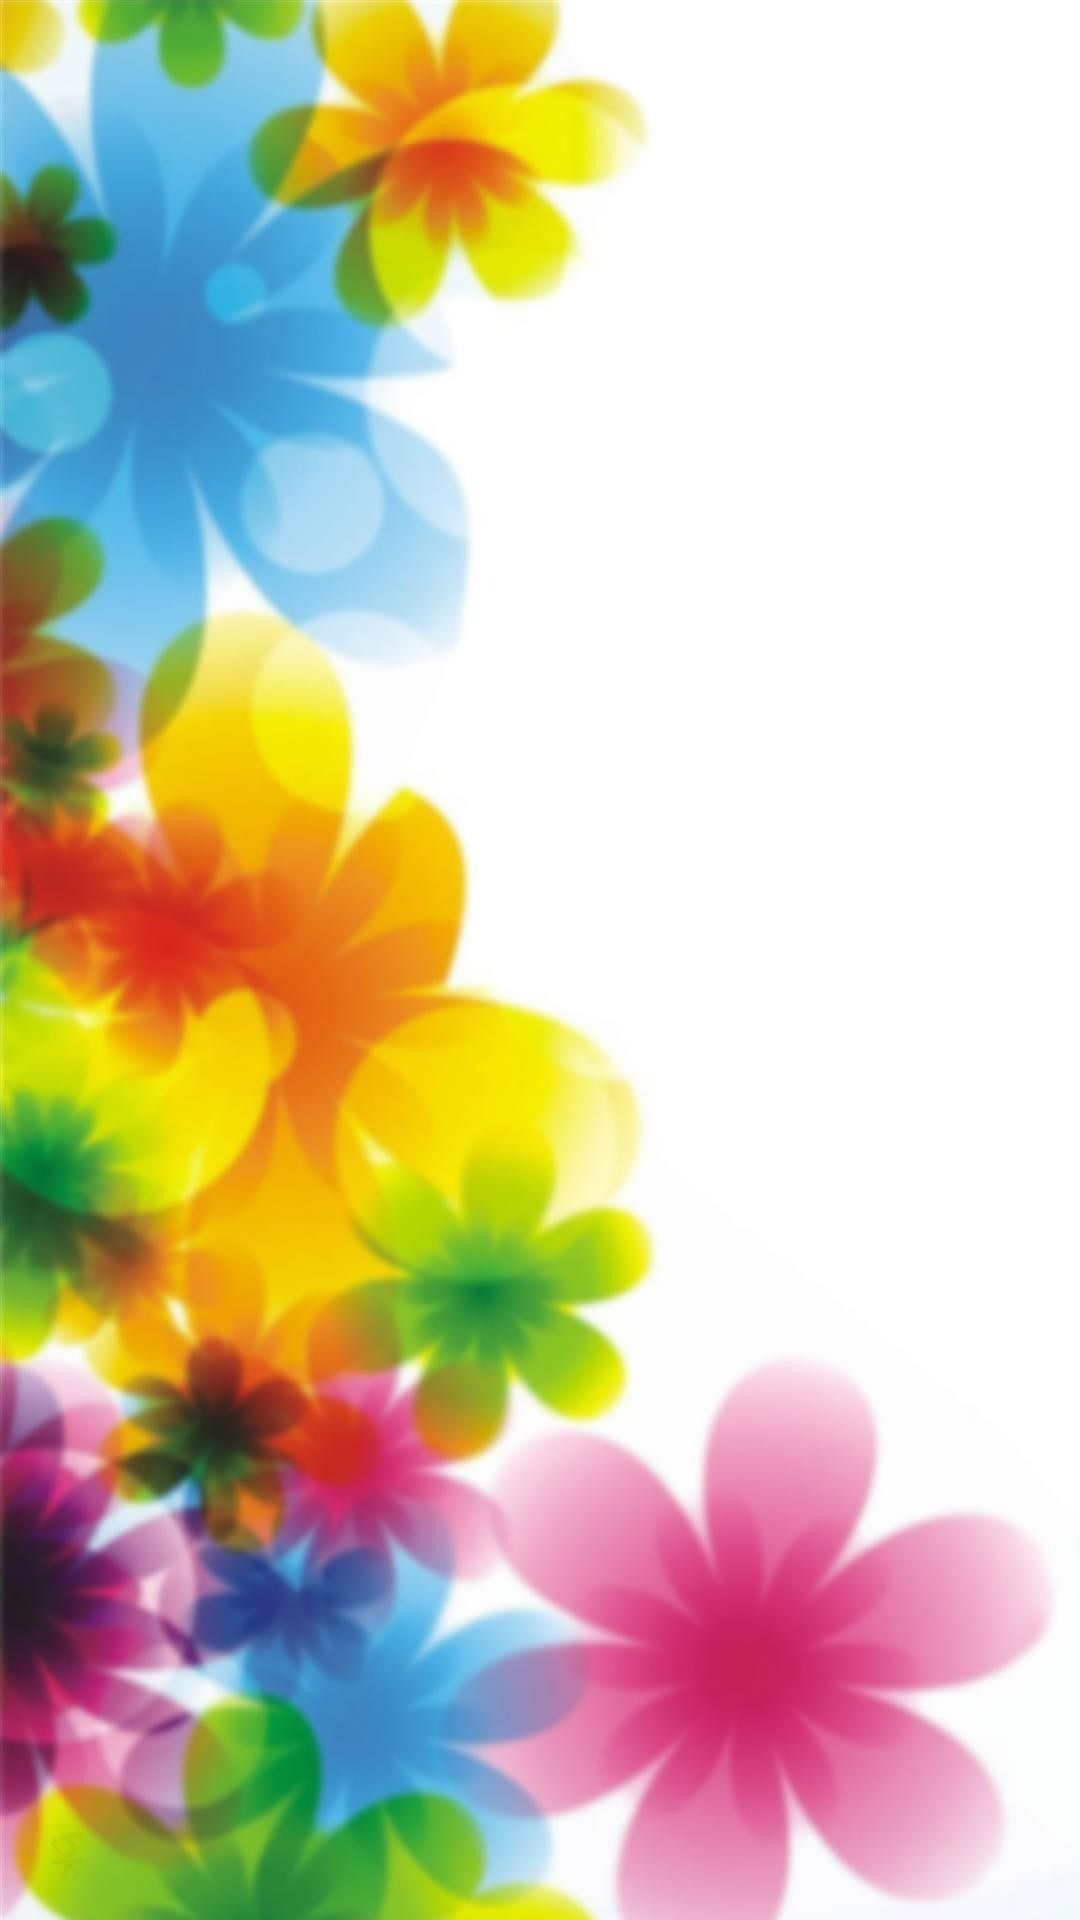 Free Colorful Flower Desktop Wallpaper: Colorful Floral Print IPhone Wallpaper